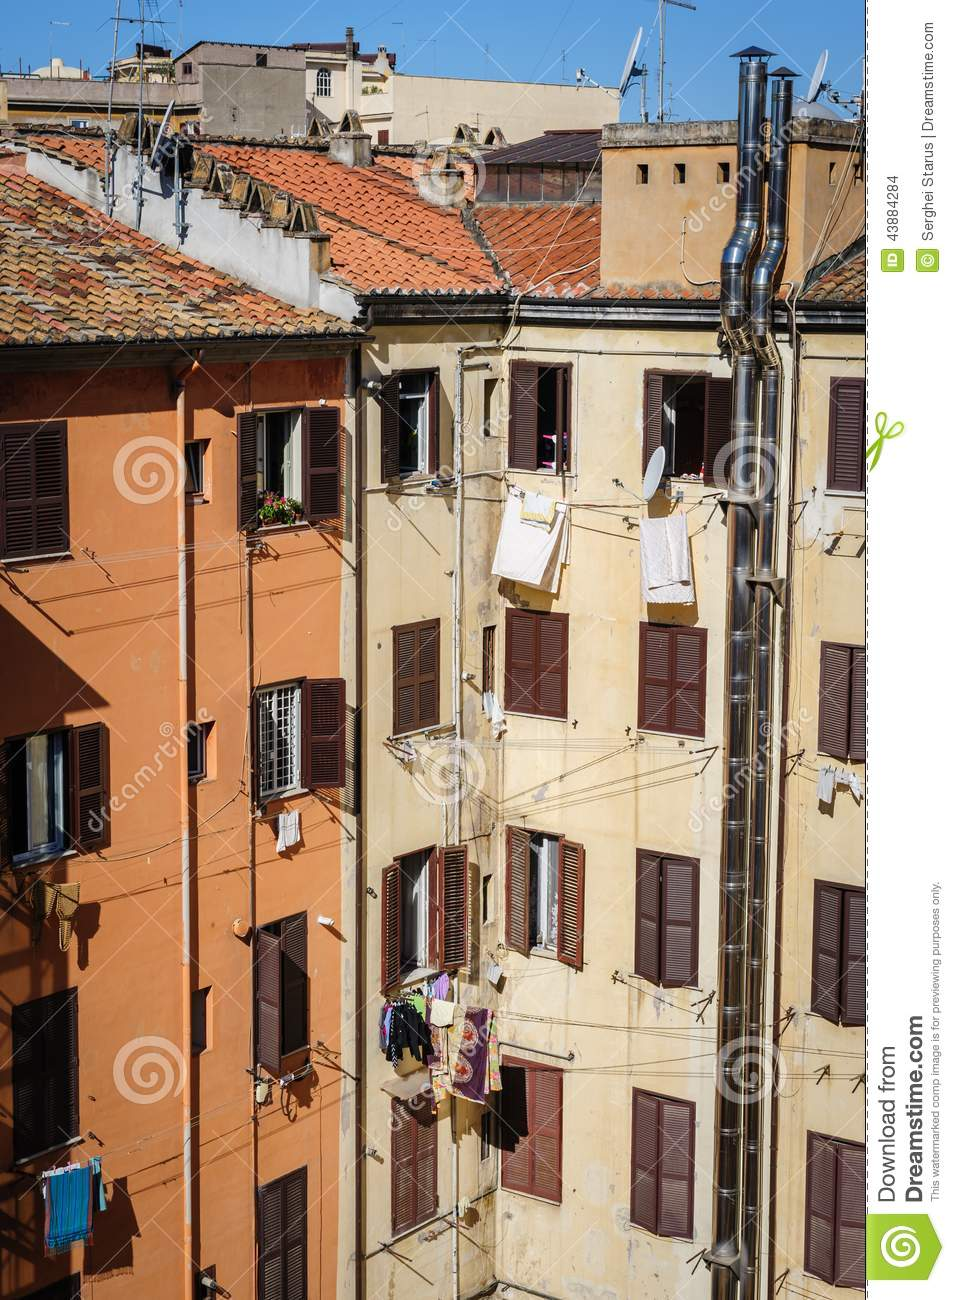 Apartment Homes In Rome, Italy Stock Photo - Image: 43884284